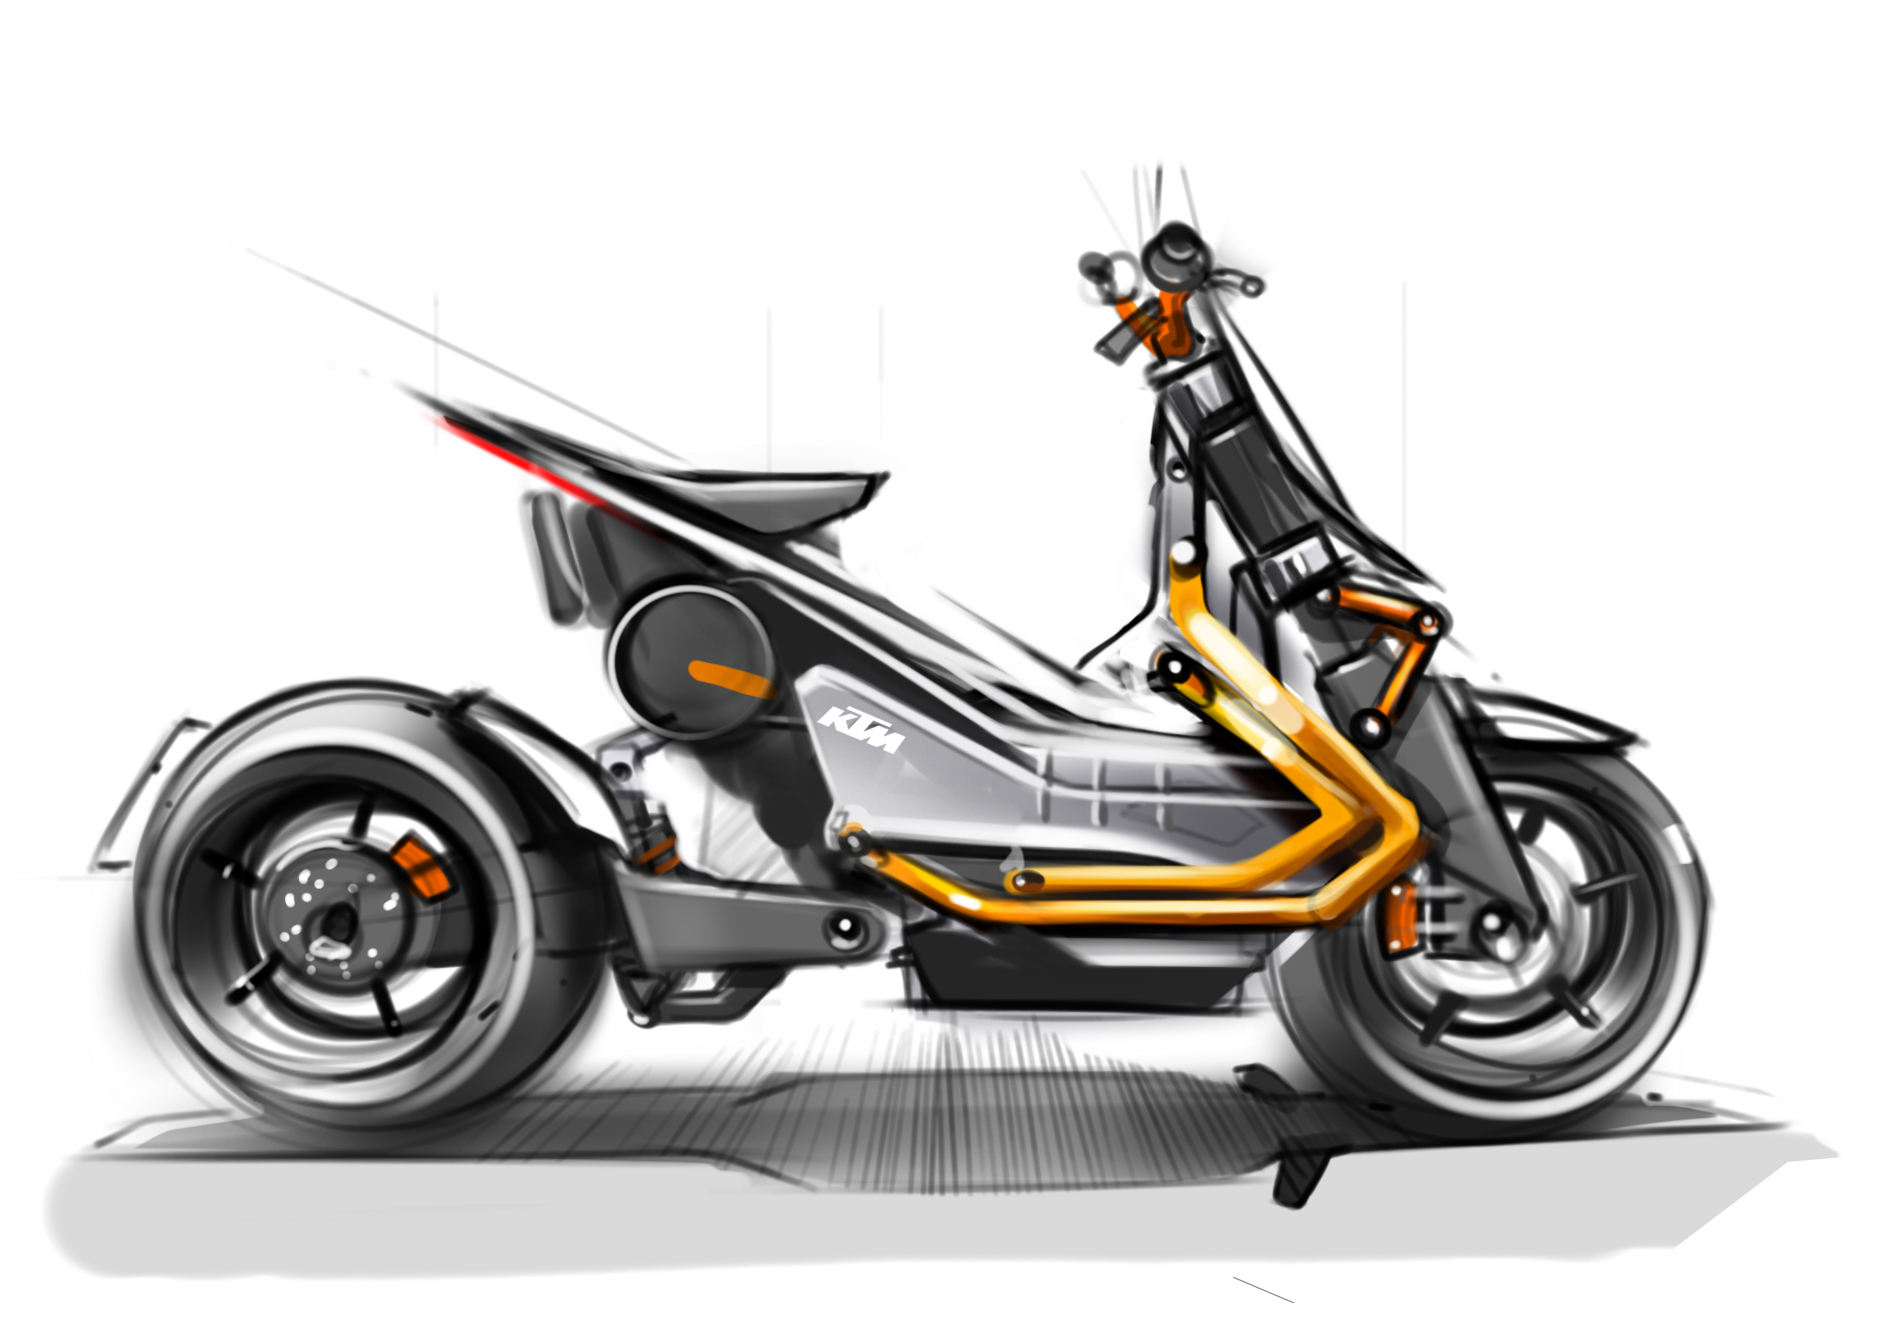 Foto: KTM E-Motion Vehicle c) KISKA GmbH